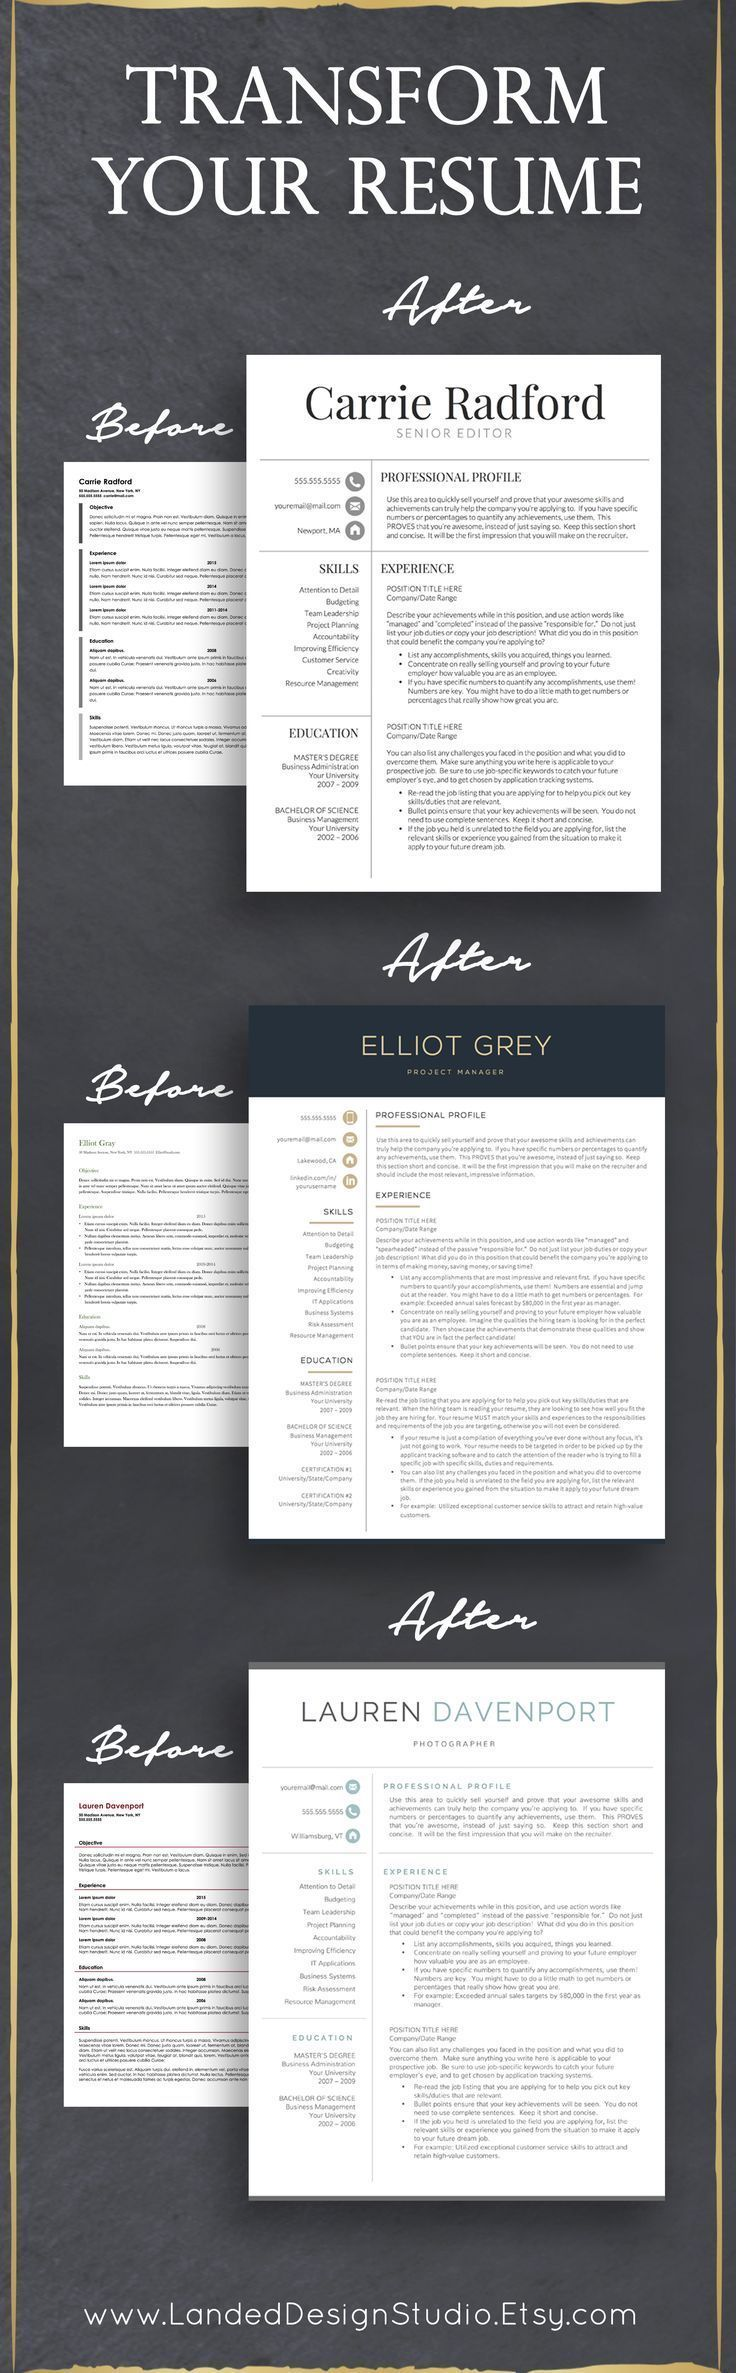 The Best Resume Ever How to